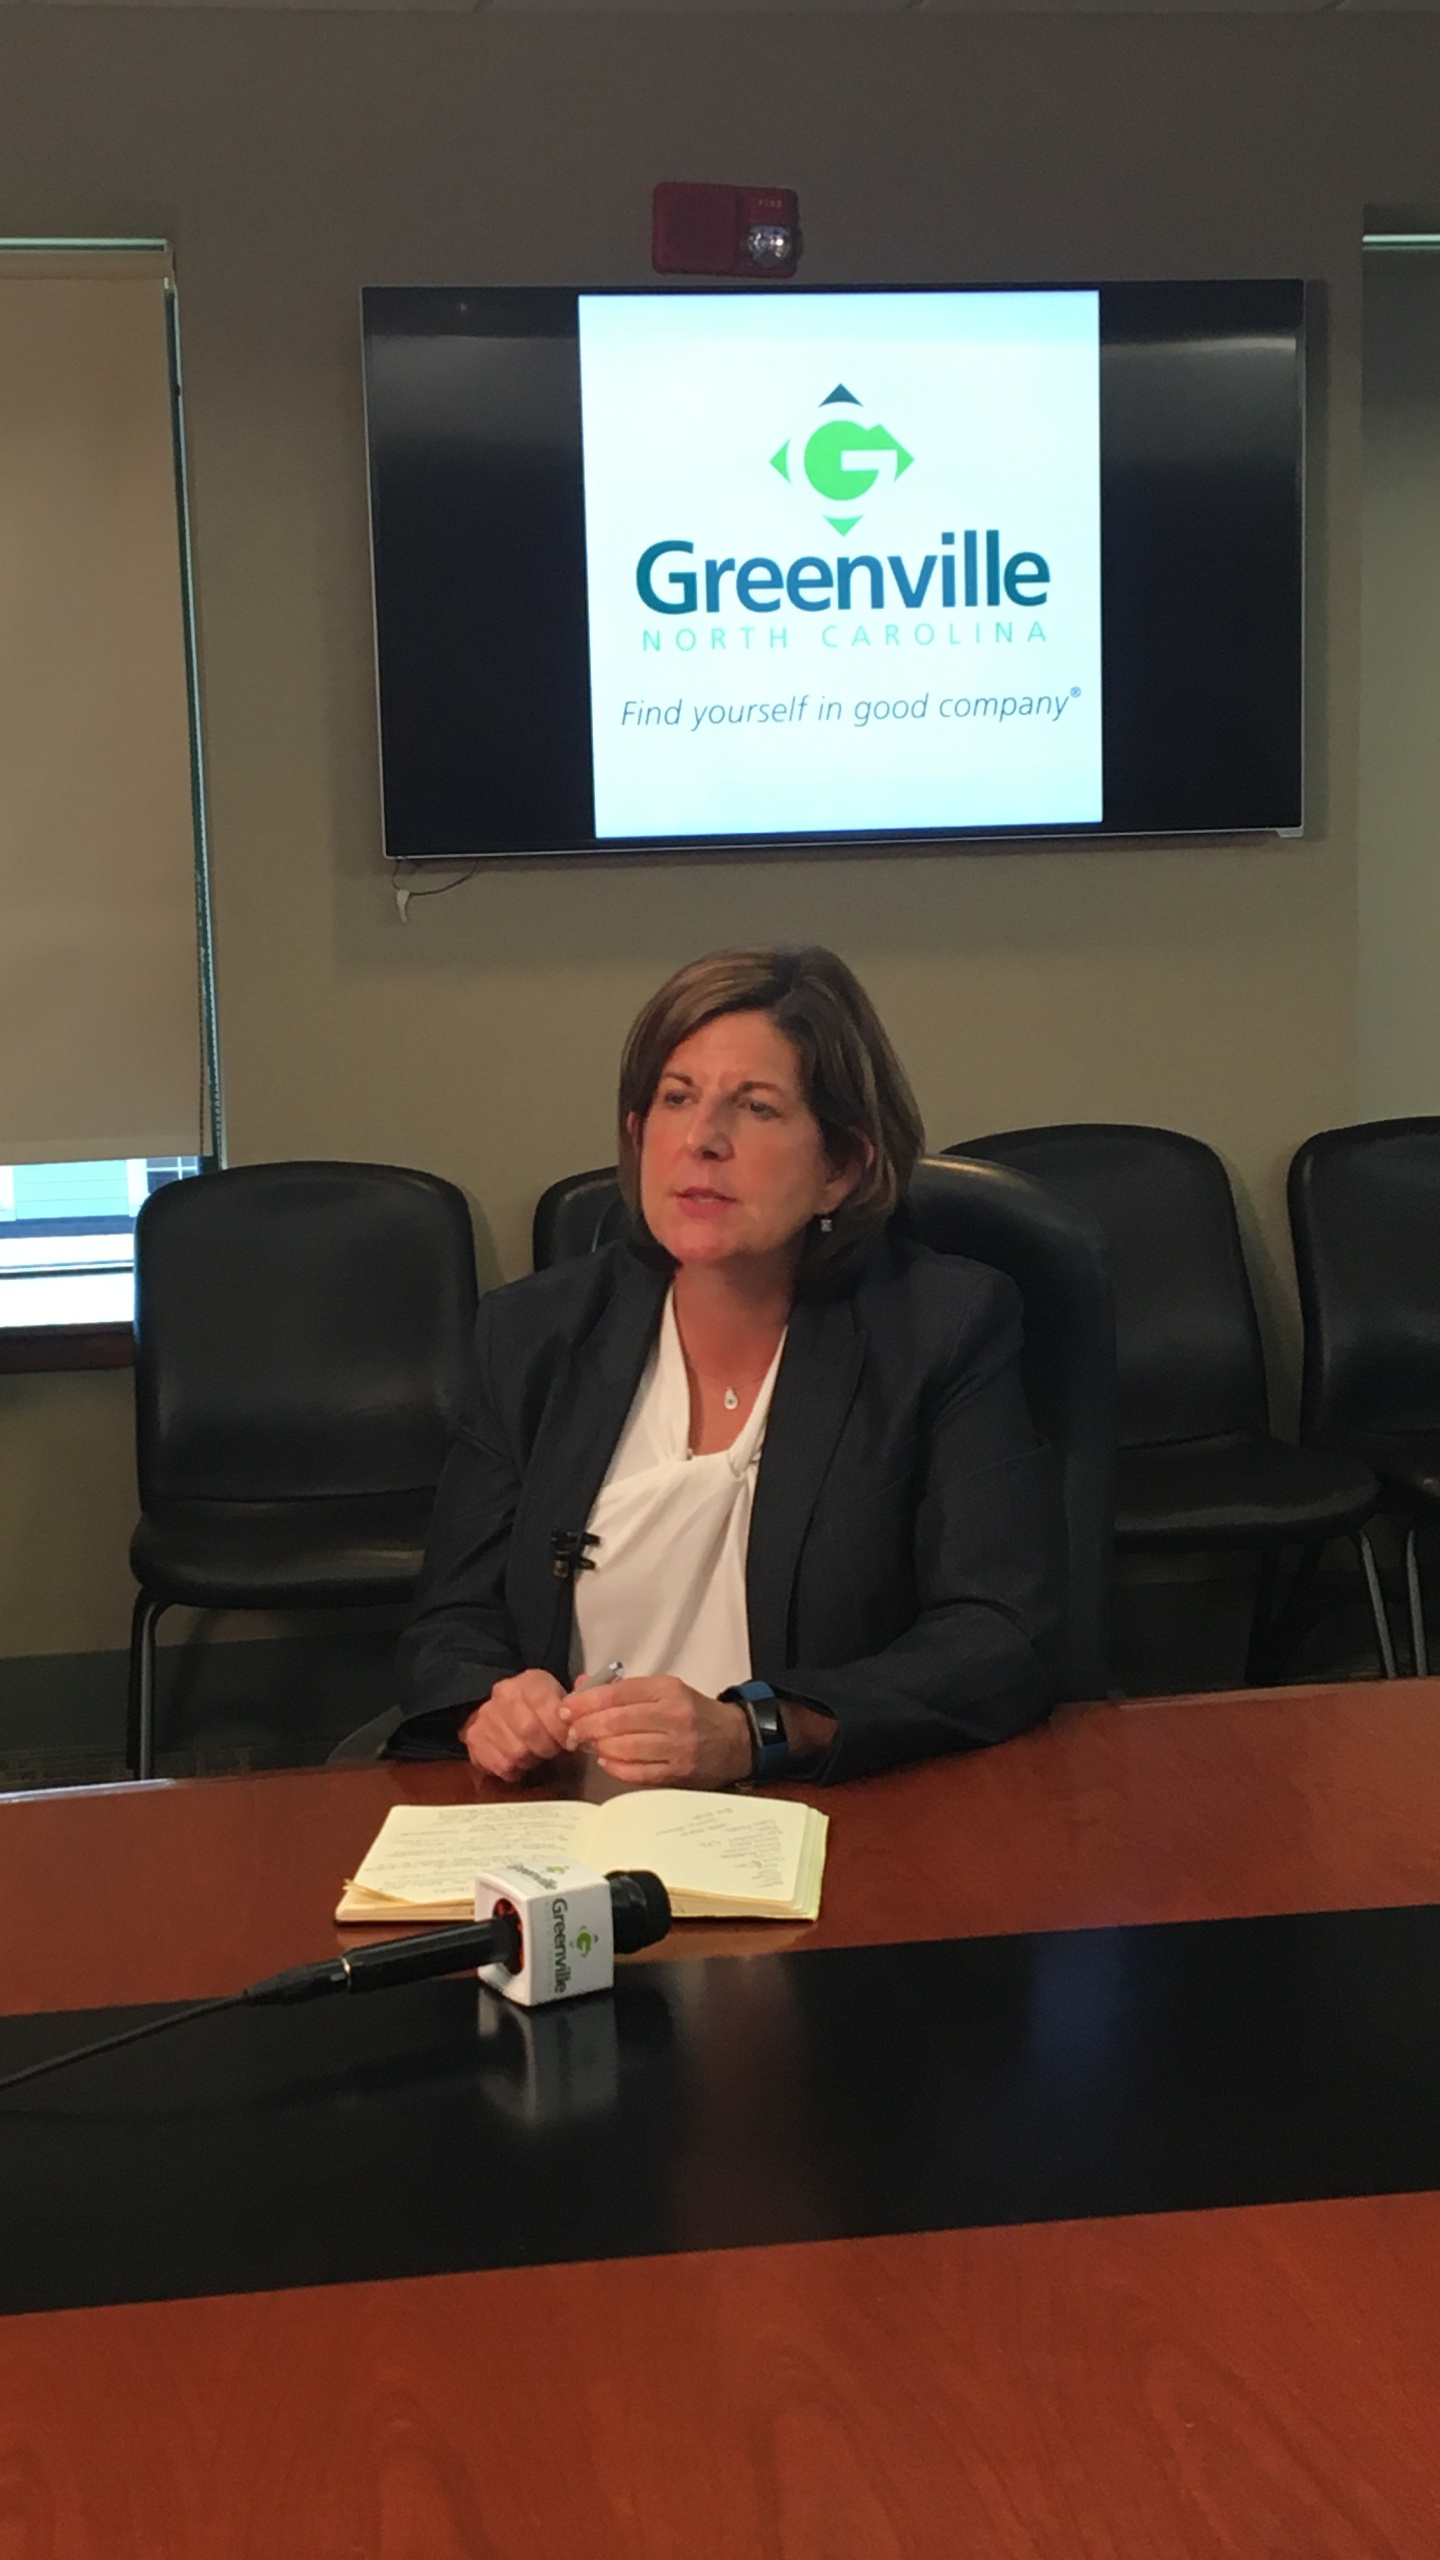 greenville city manager_447479